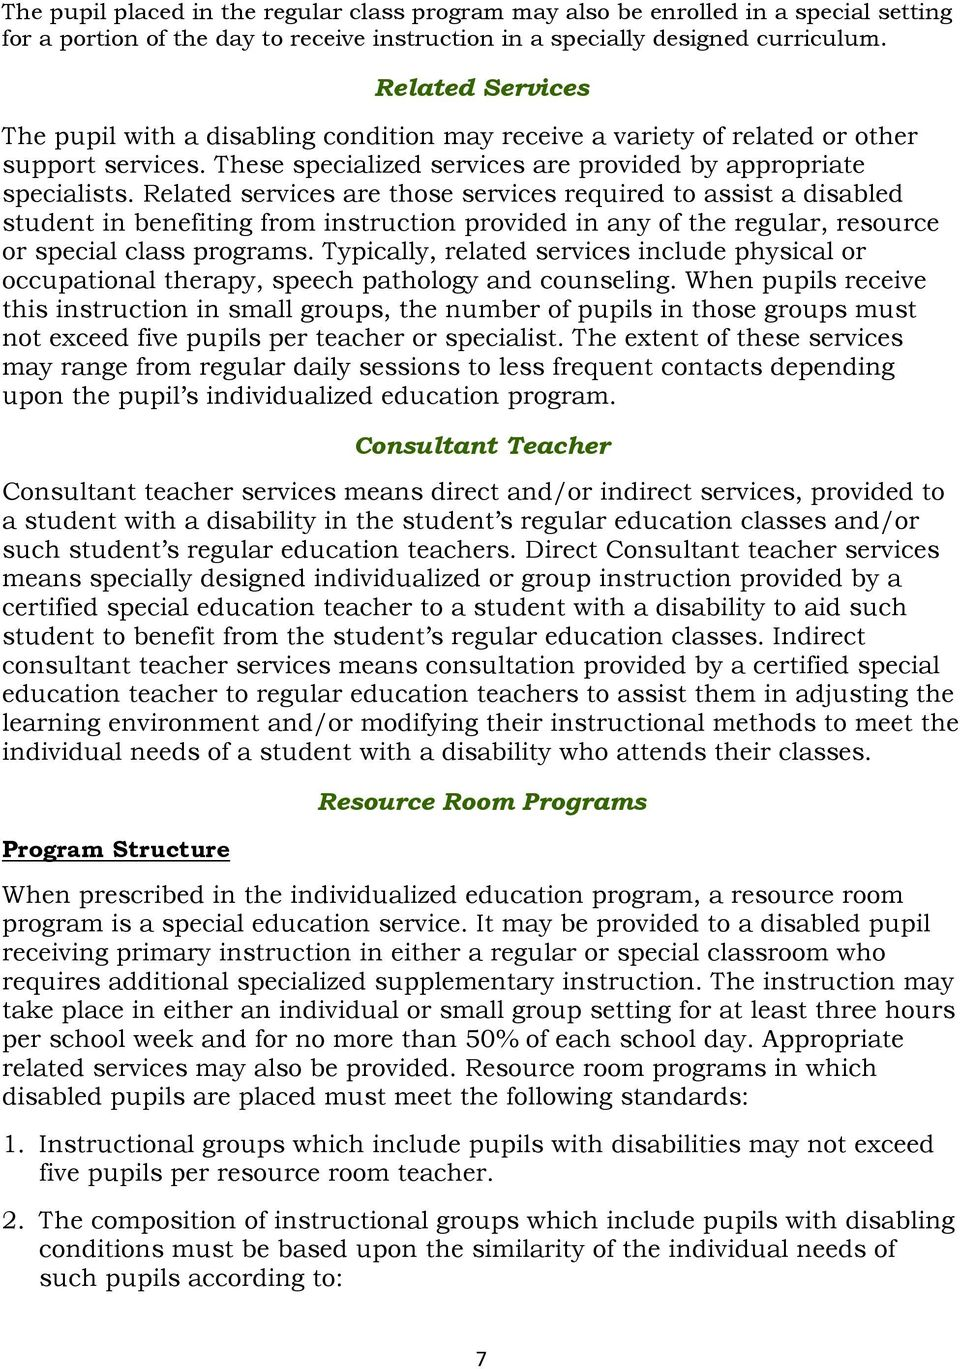 Related services are those services required to assist a disabled student in benefiting from instruction provided in any of the regular, resource or special class programs.